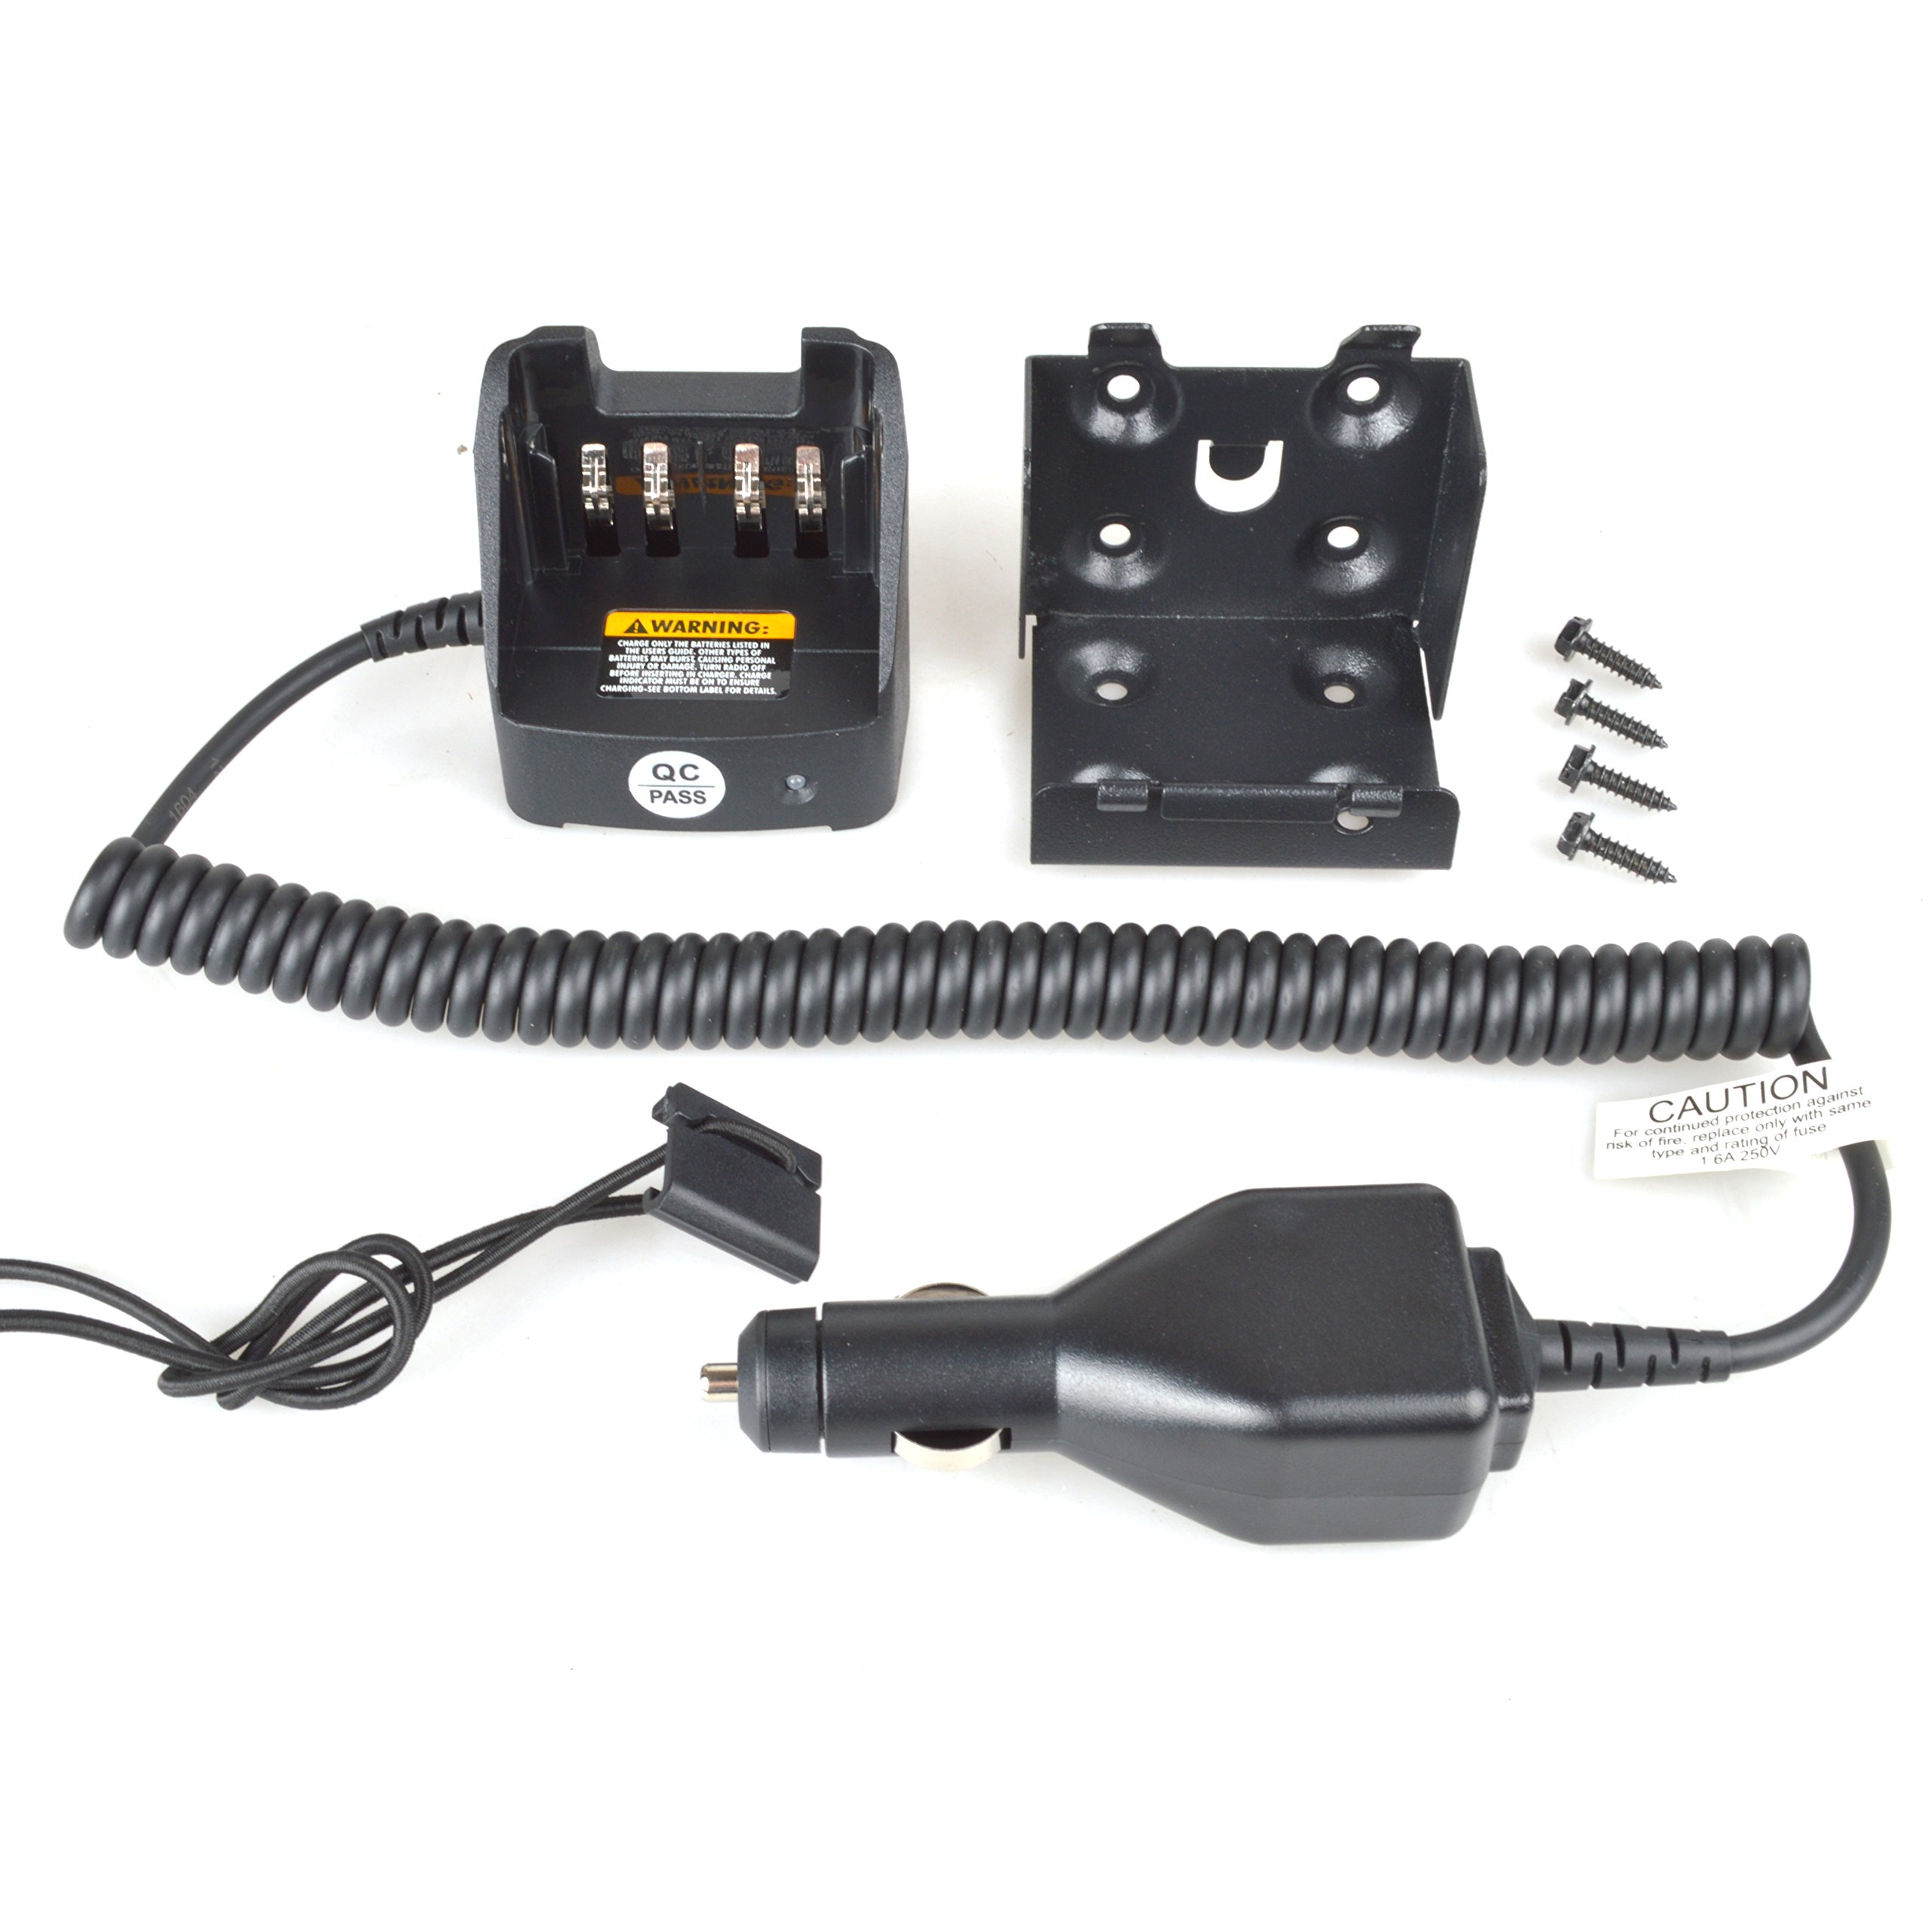 Guanshan RLN6433A Car Battery Charger for Motorola XPR7380 XPR7350 XPR7550 XPR6550 XPR6500 XPR6380 XPR6350 XPR6300 XPR3300 XPR3500 APX3000 APX4000 Radio